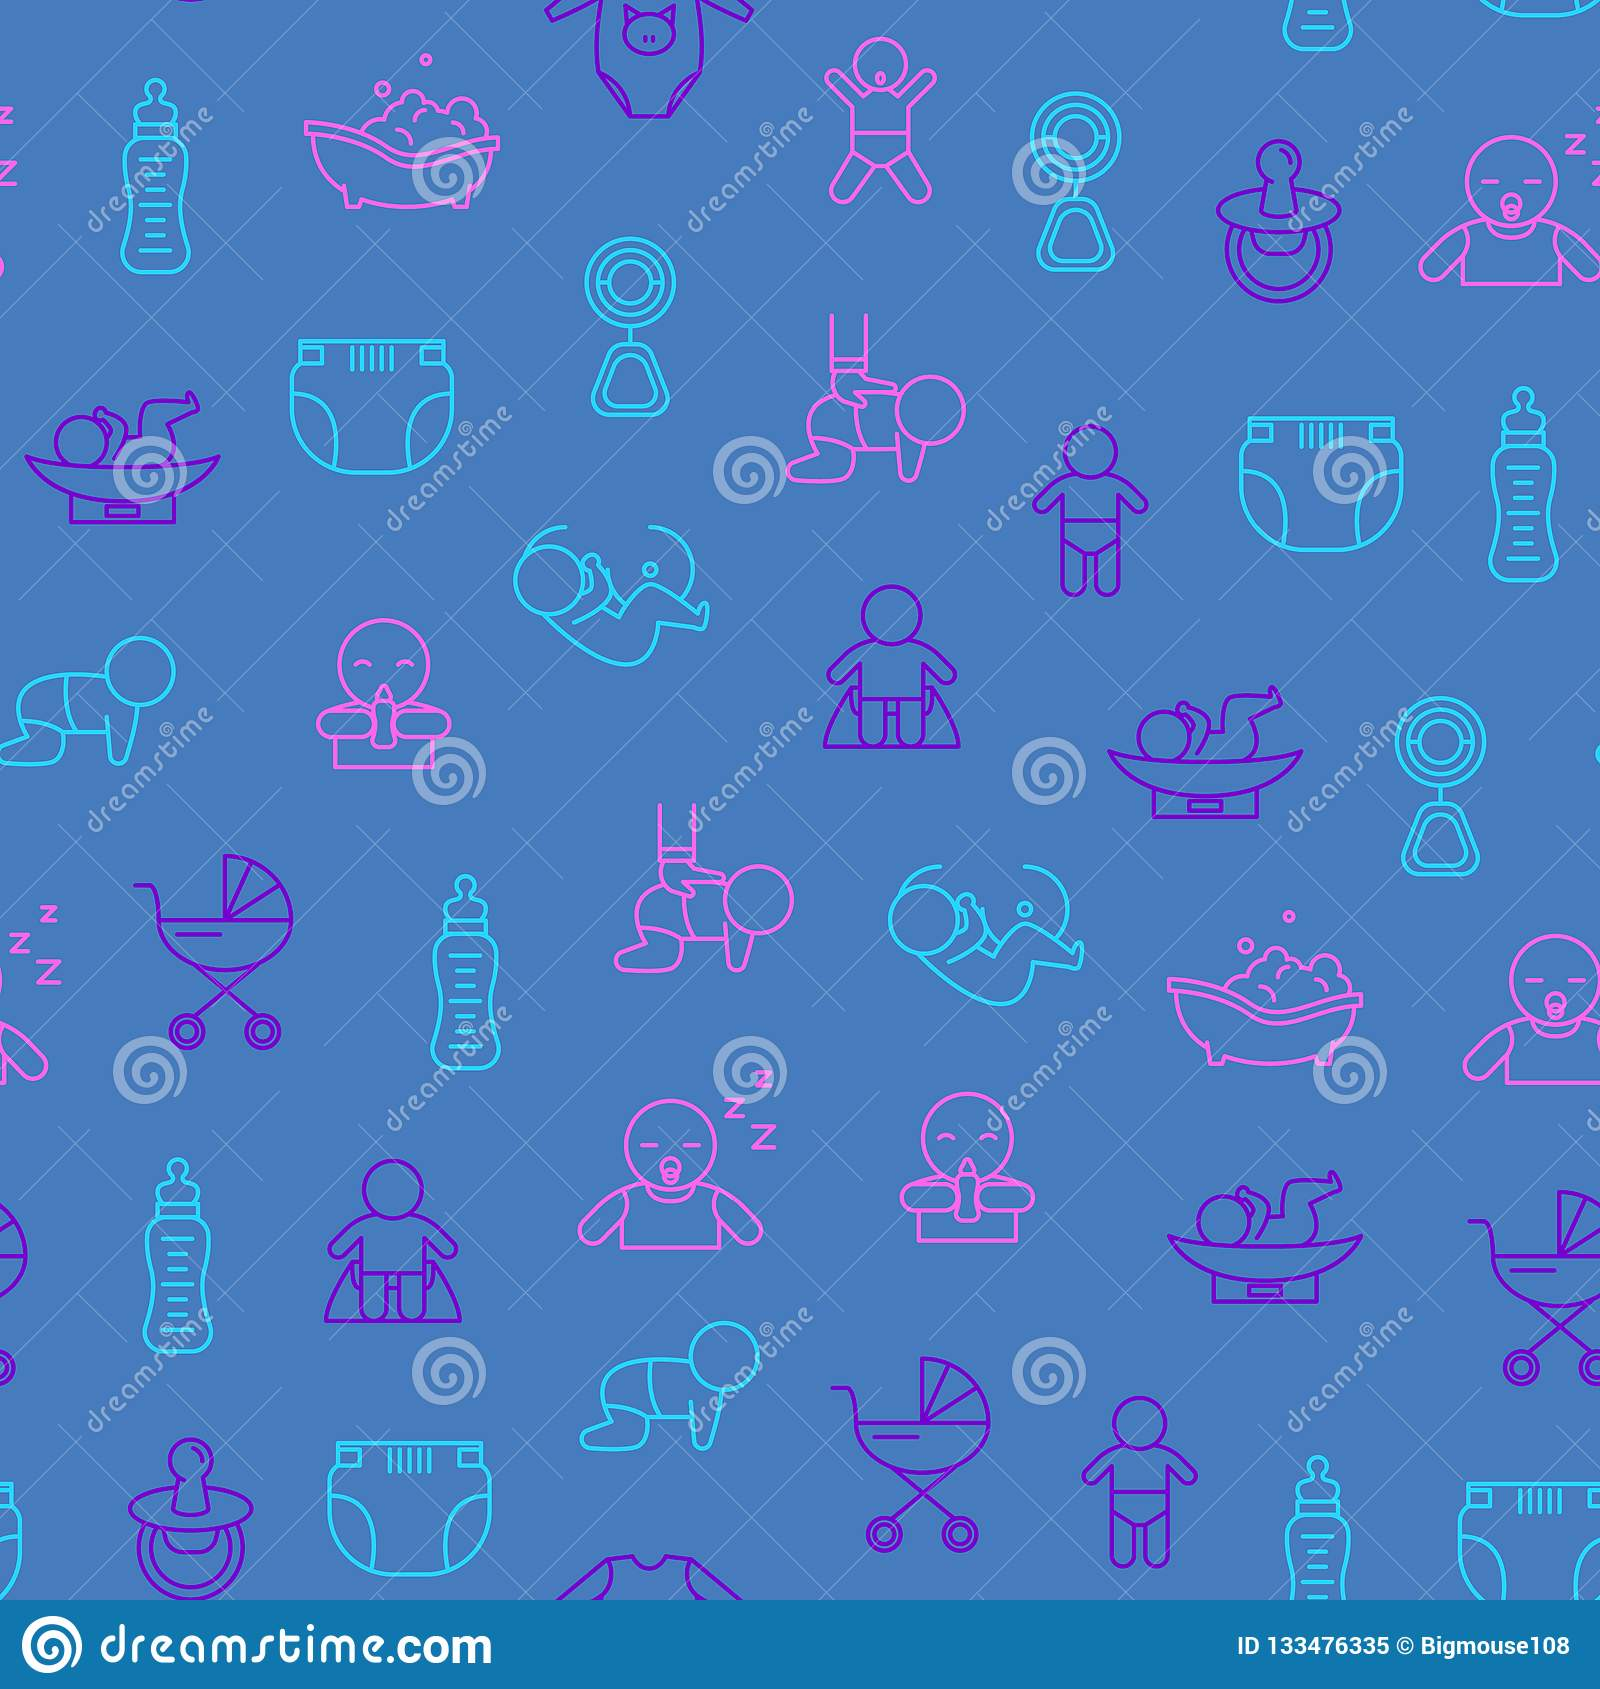 Newborn Babies Signs Thin Line Seamless Pattern Background. Vector